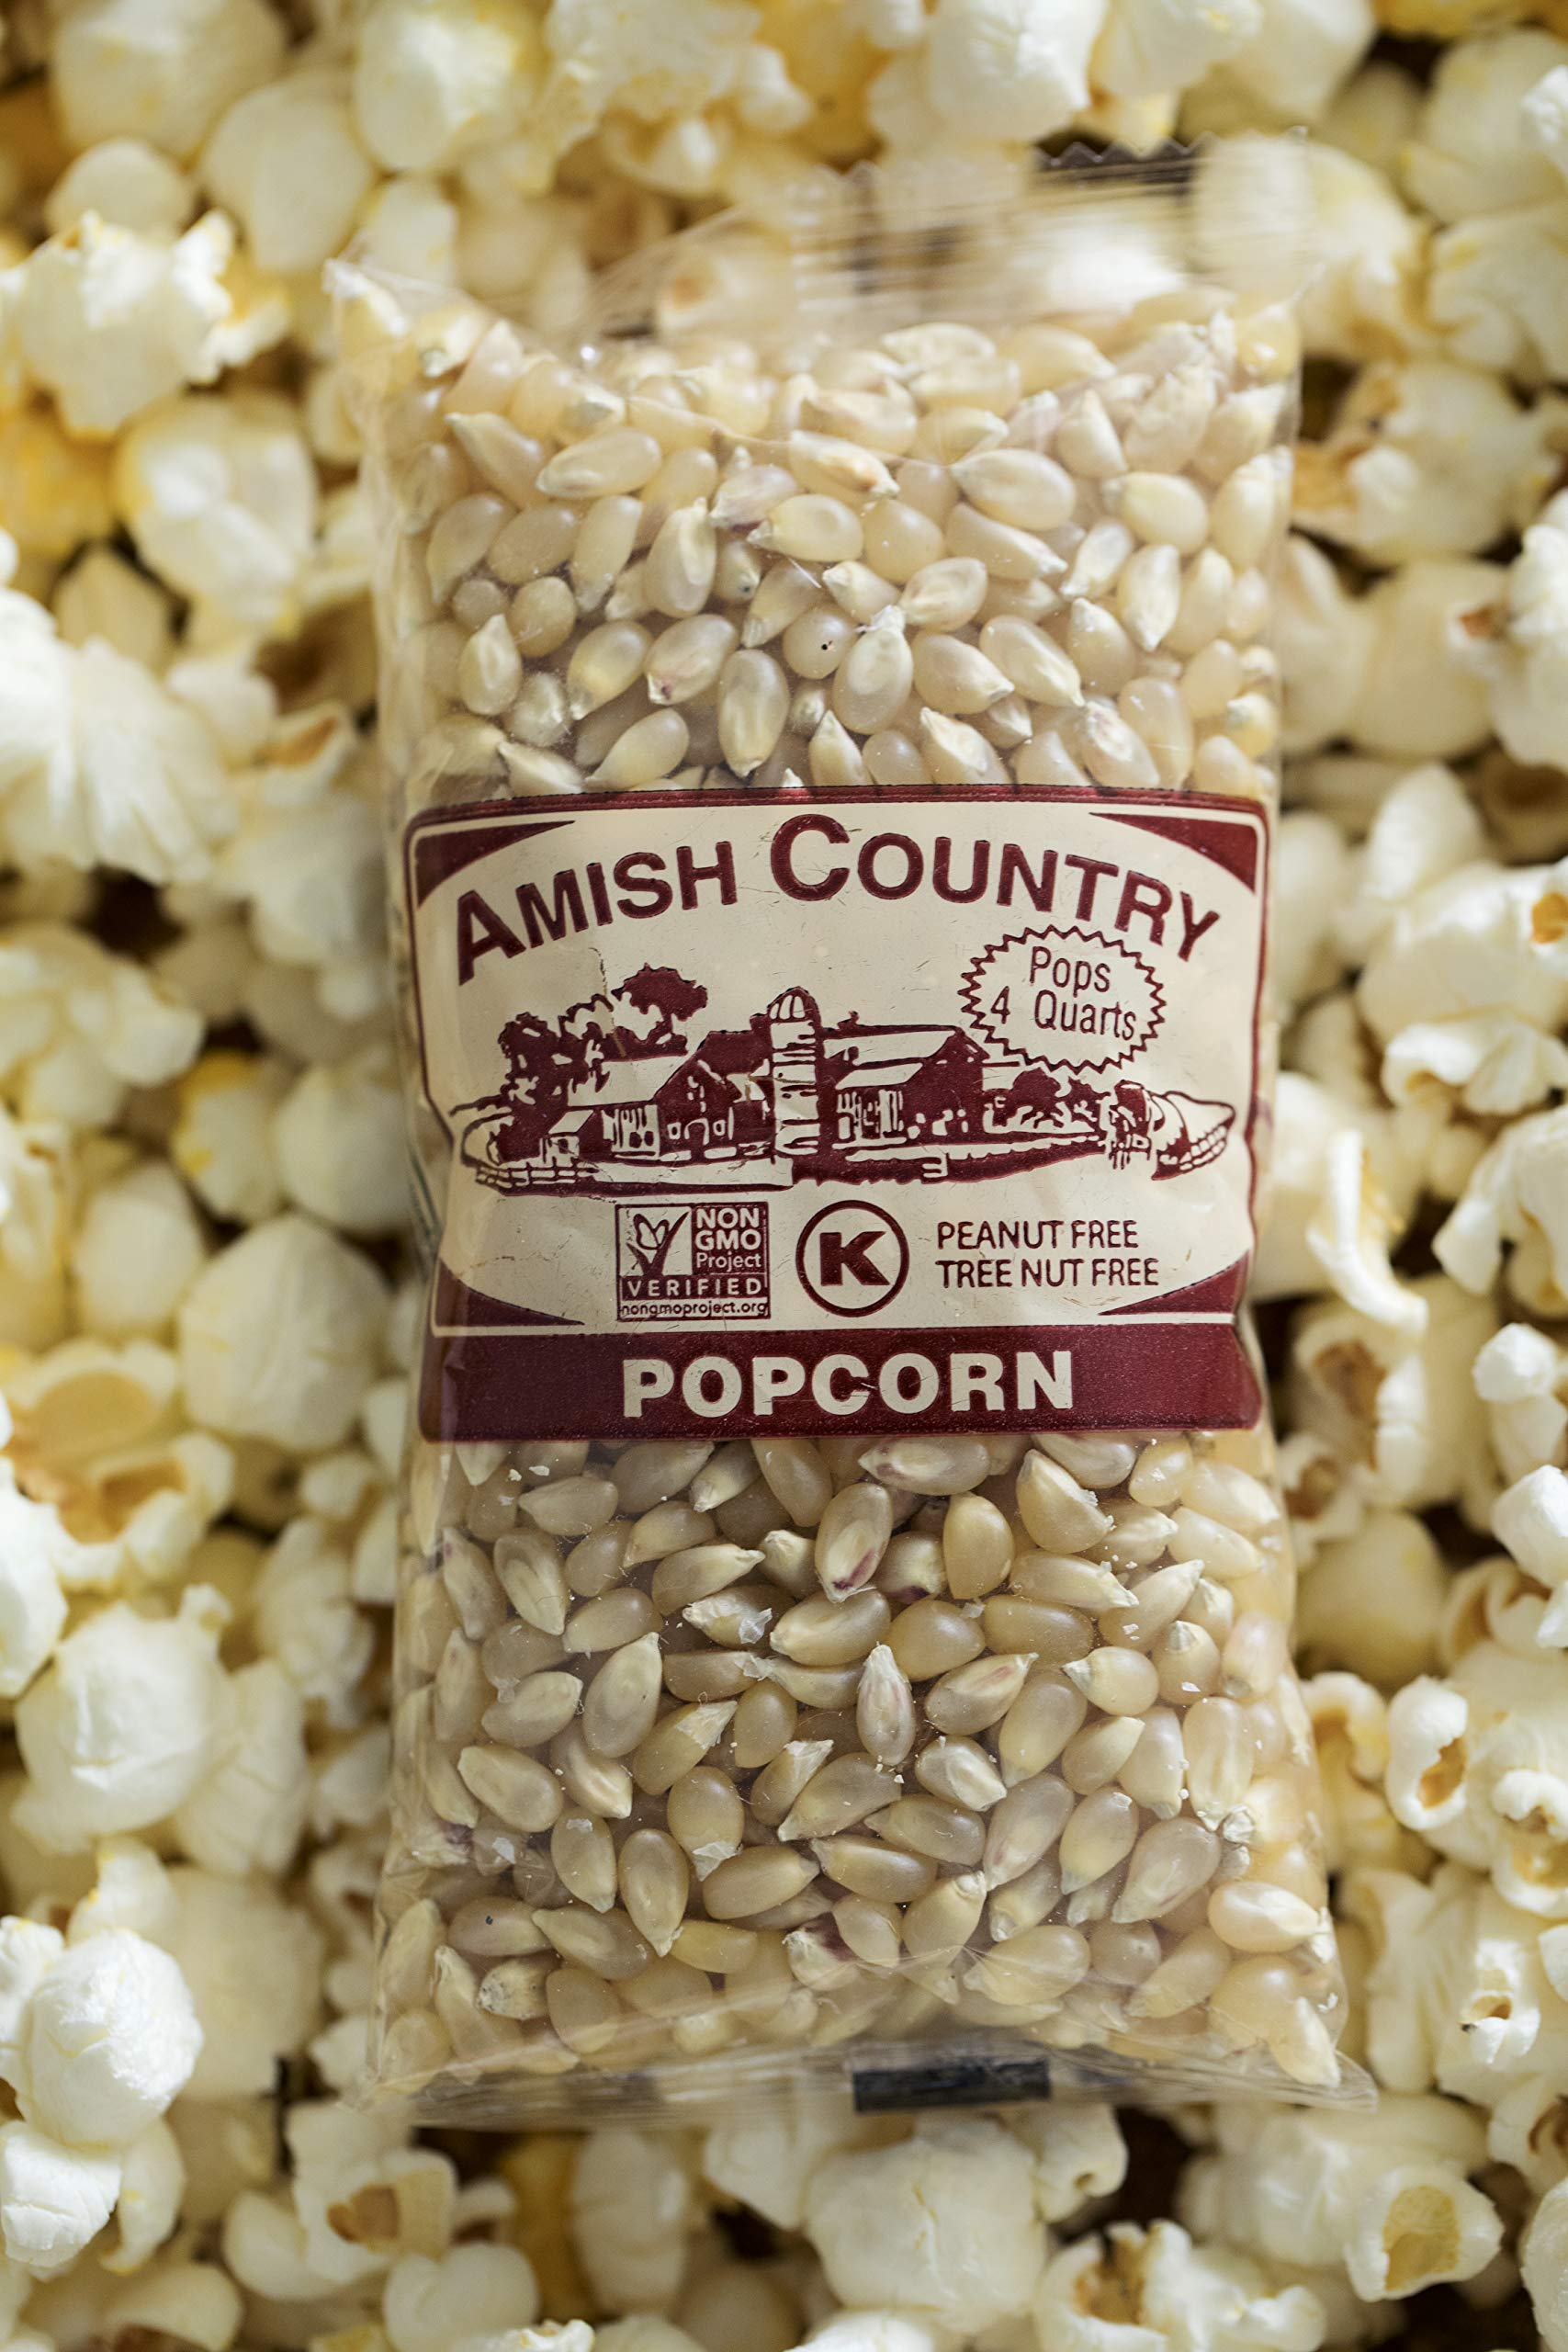 Amish Country Popcorn - Old Fashioned Baby White - (4 Ounce - 24 Bags) - Small & Tender Popcorn - With Recipe Guide by Amish Country Popcorn (Image #5)